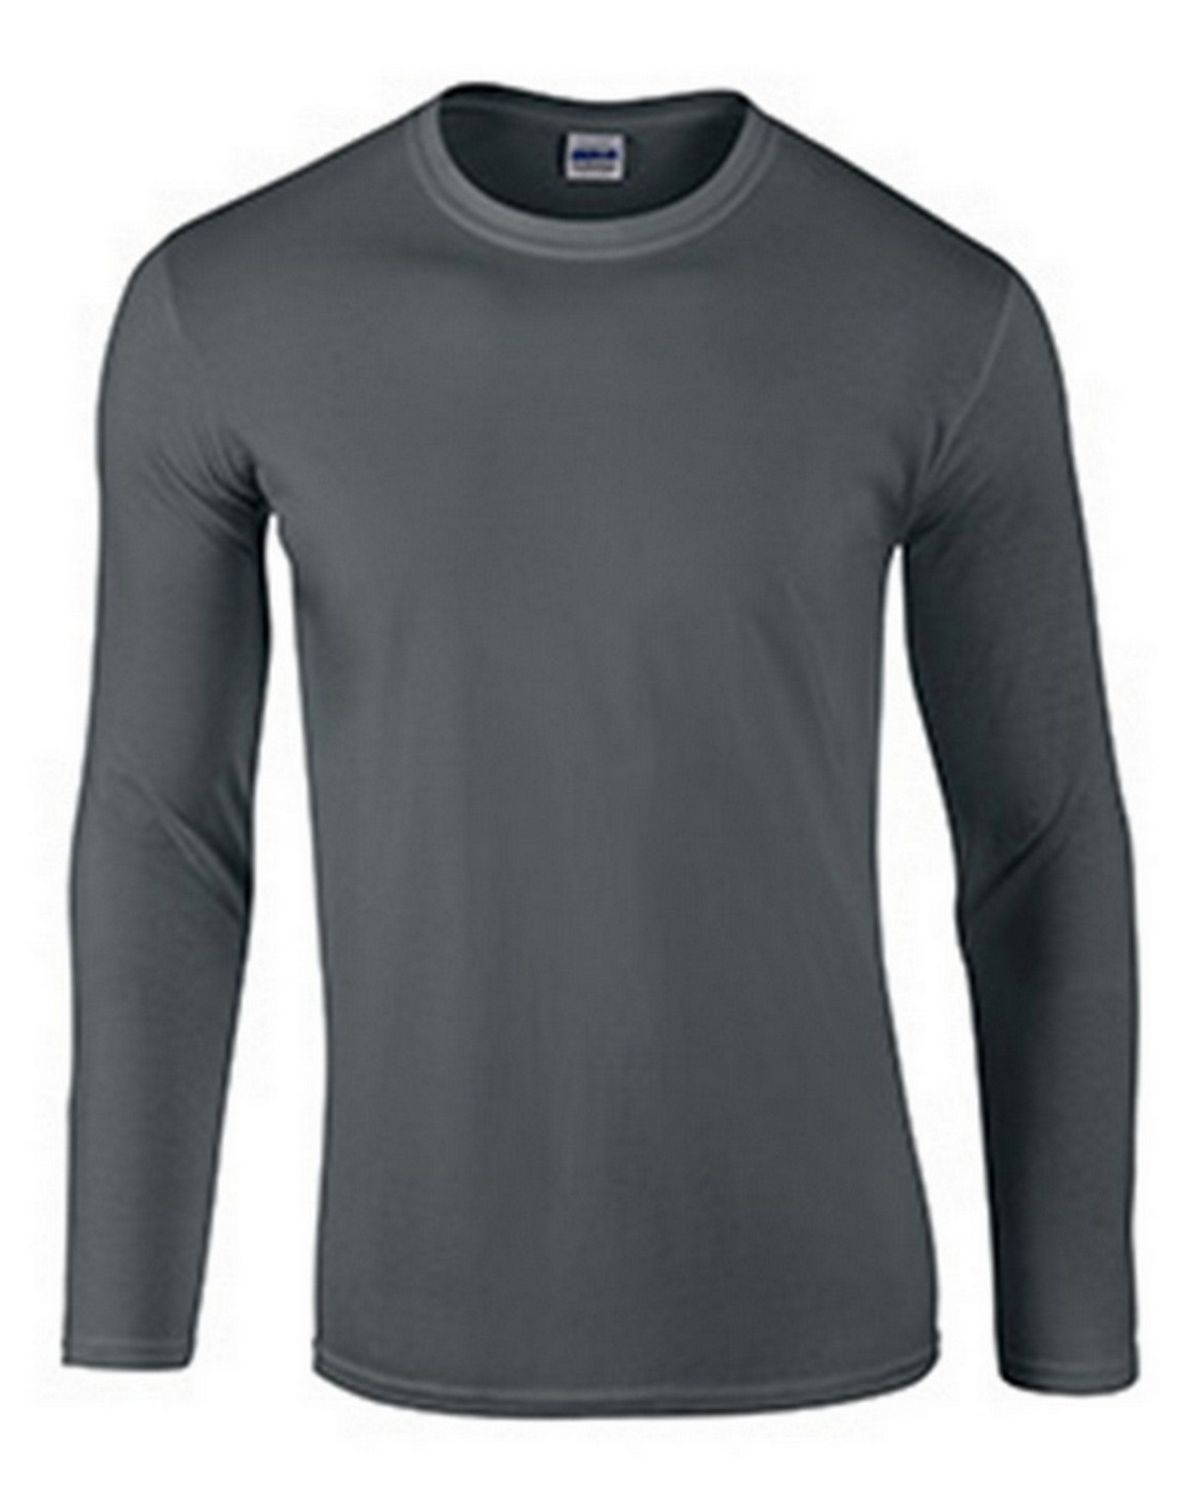 Gildan G64400 Adult Long Sleeve Tee - Charcoal - 3X G64400